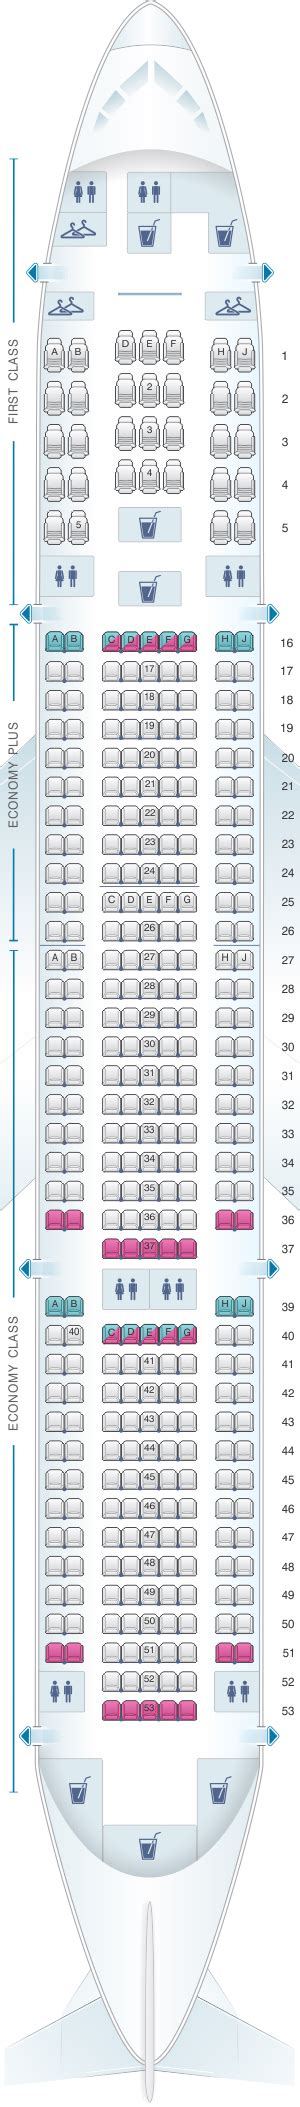 united 777 200 seat map seat map united airlines boeing b777 200 777 version 4